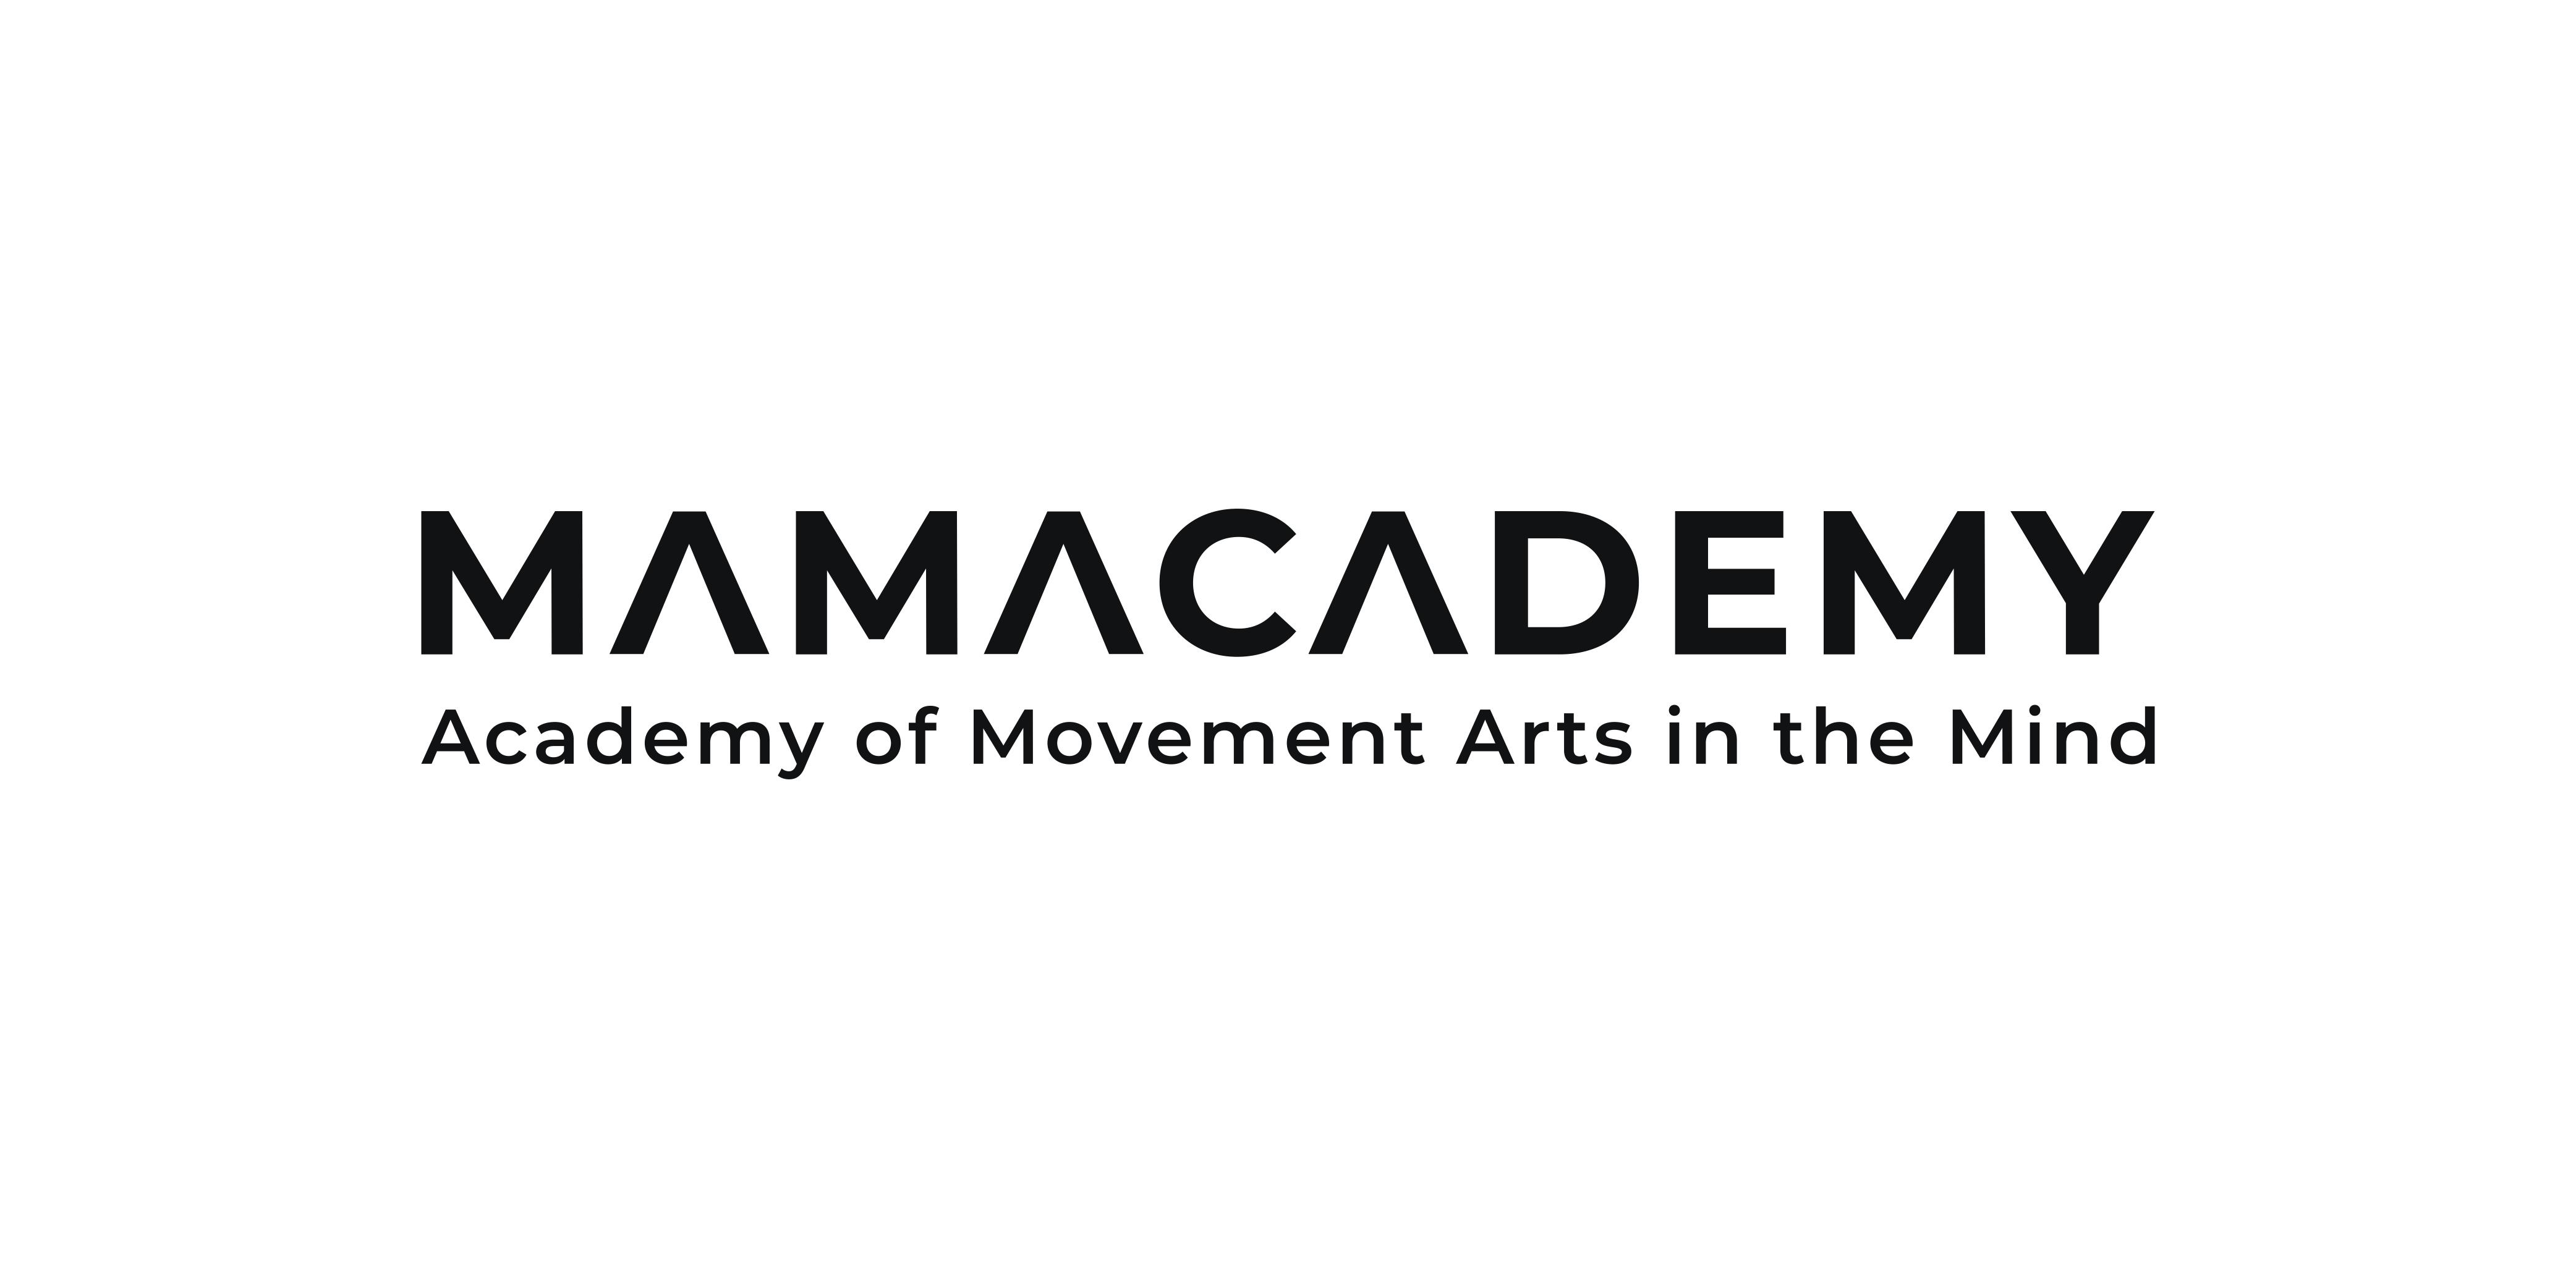 Themamacademy